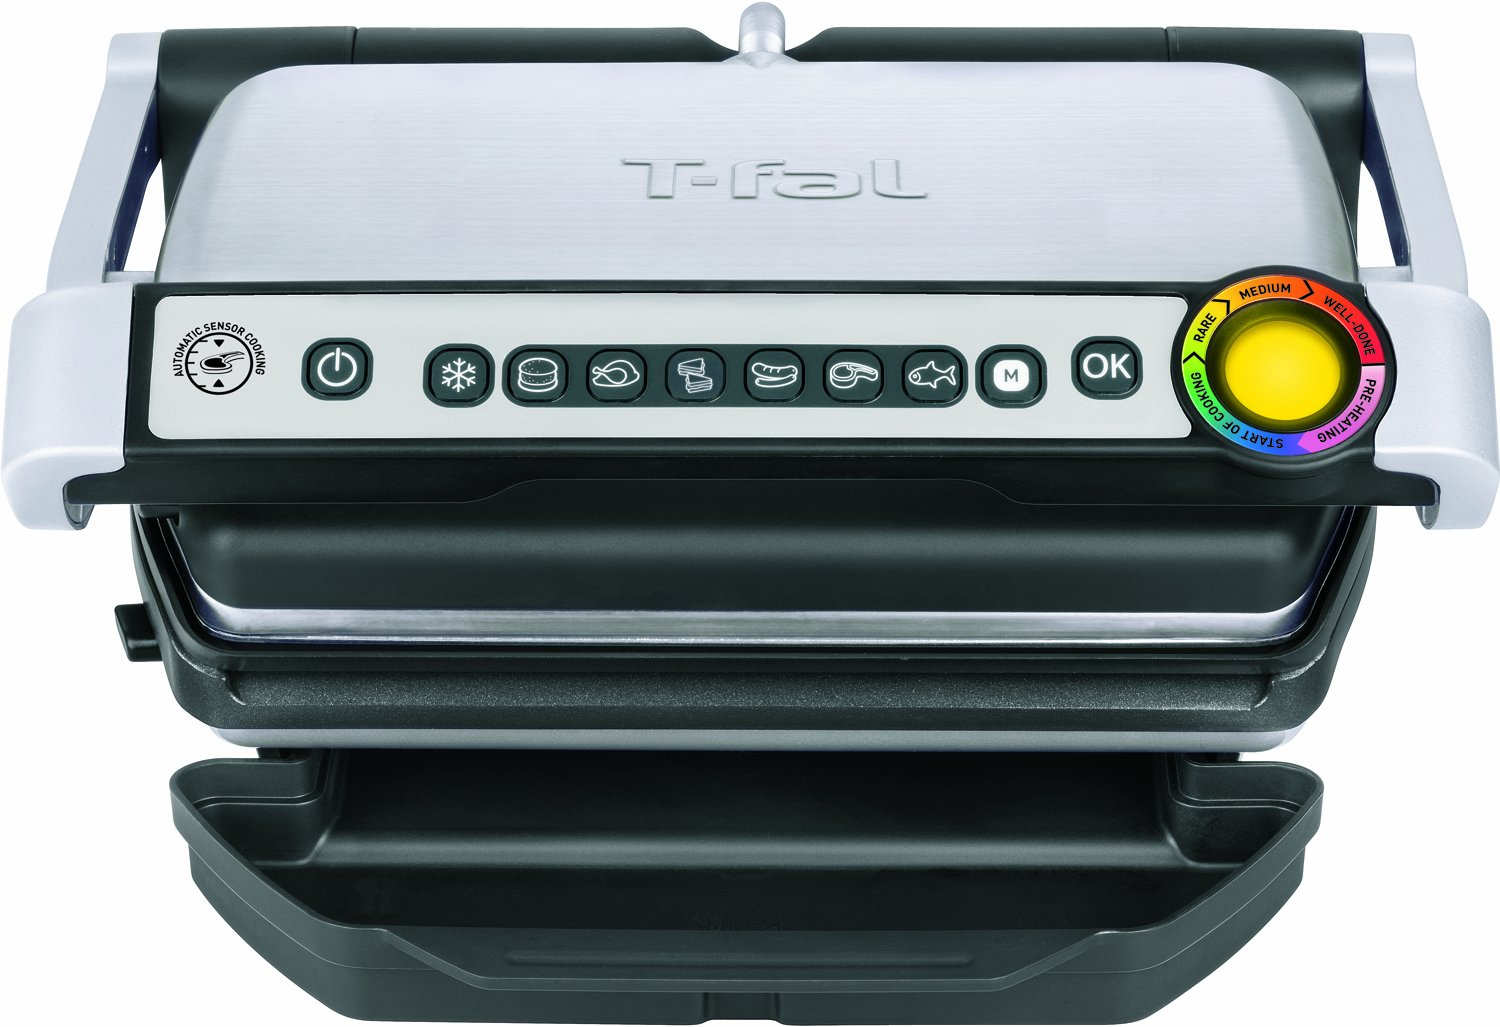 T-fal GC70 OptiGrill Electric Grill